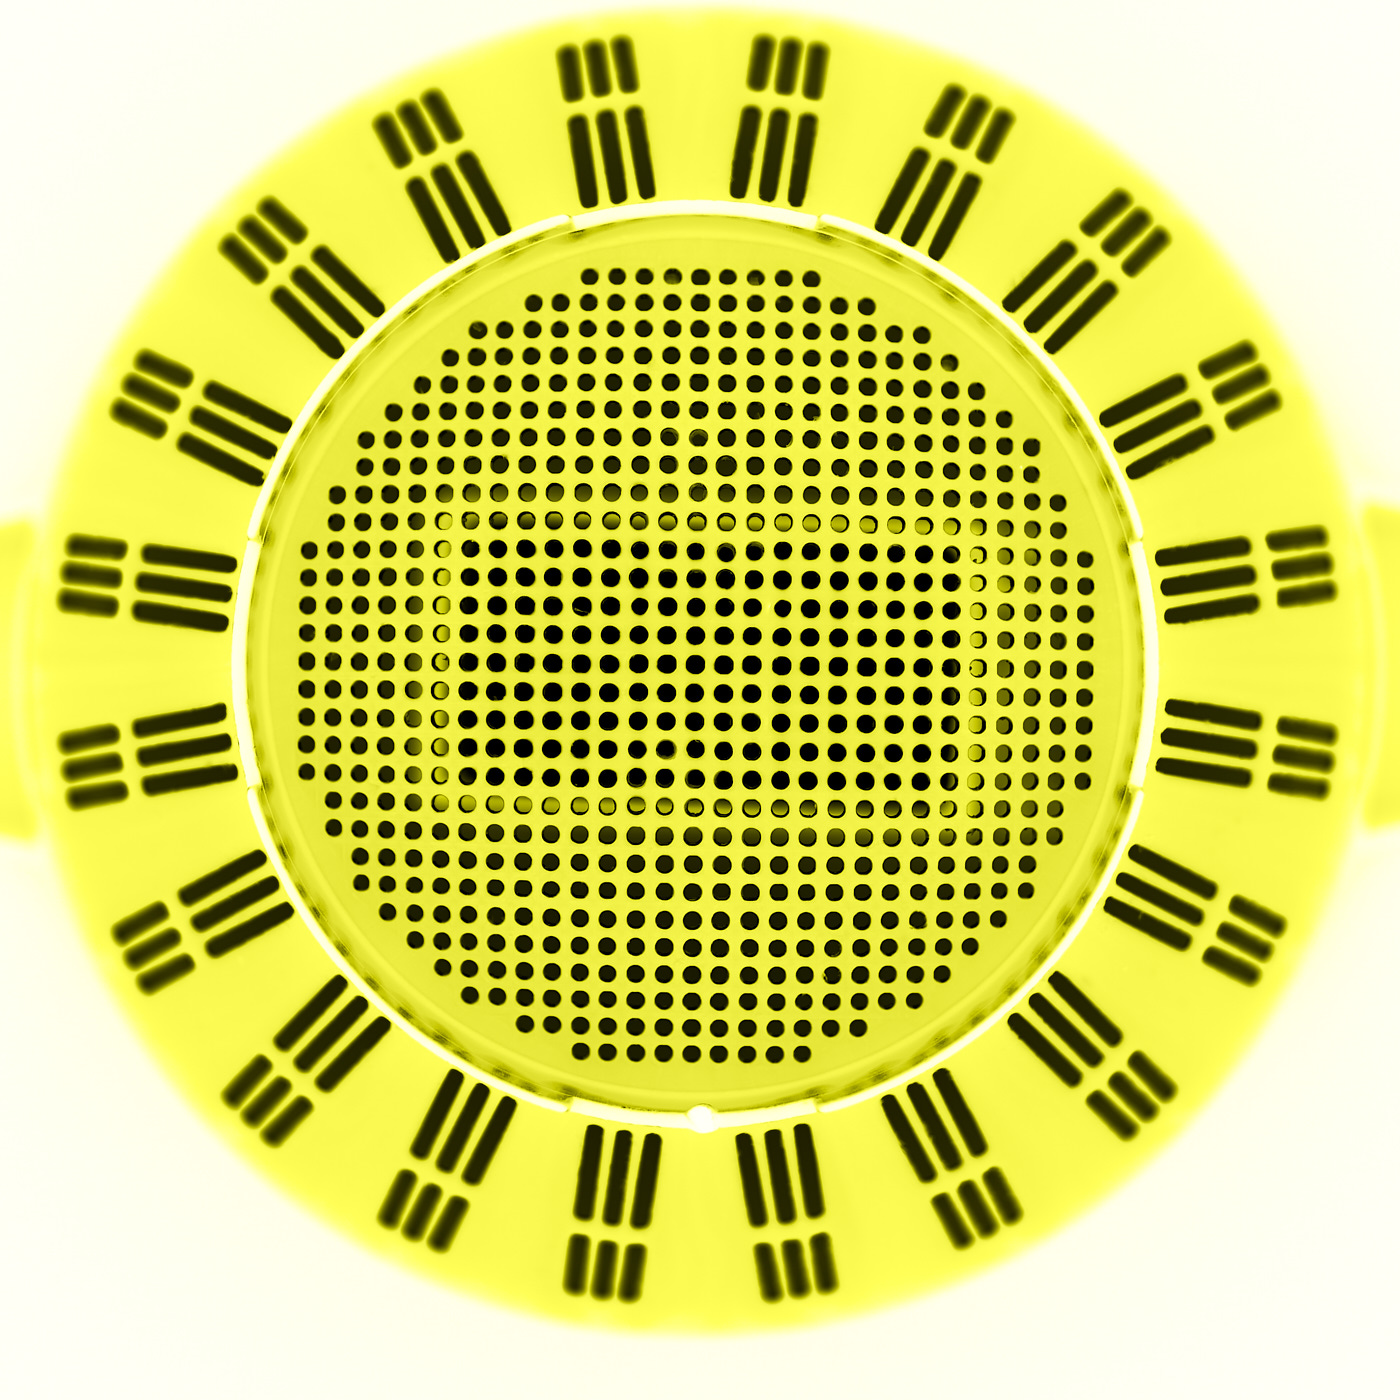 strainer in yellow abstract